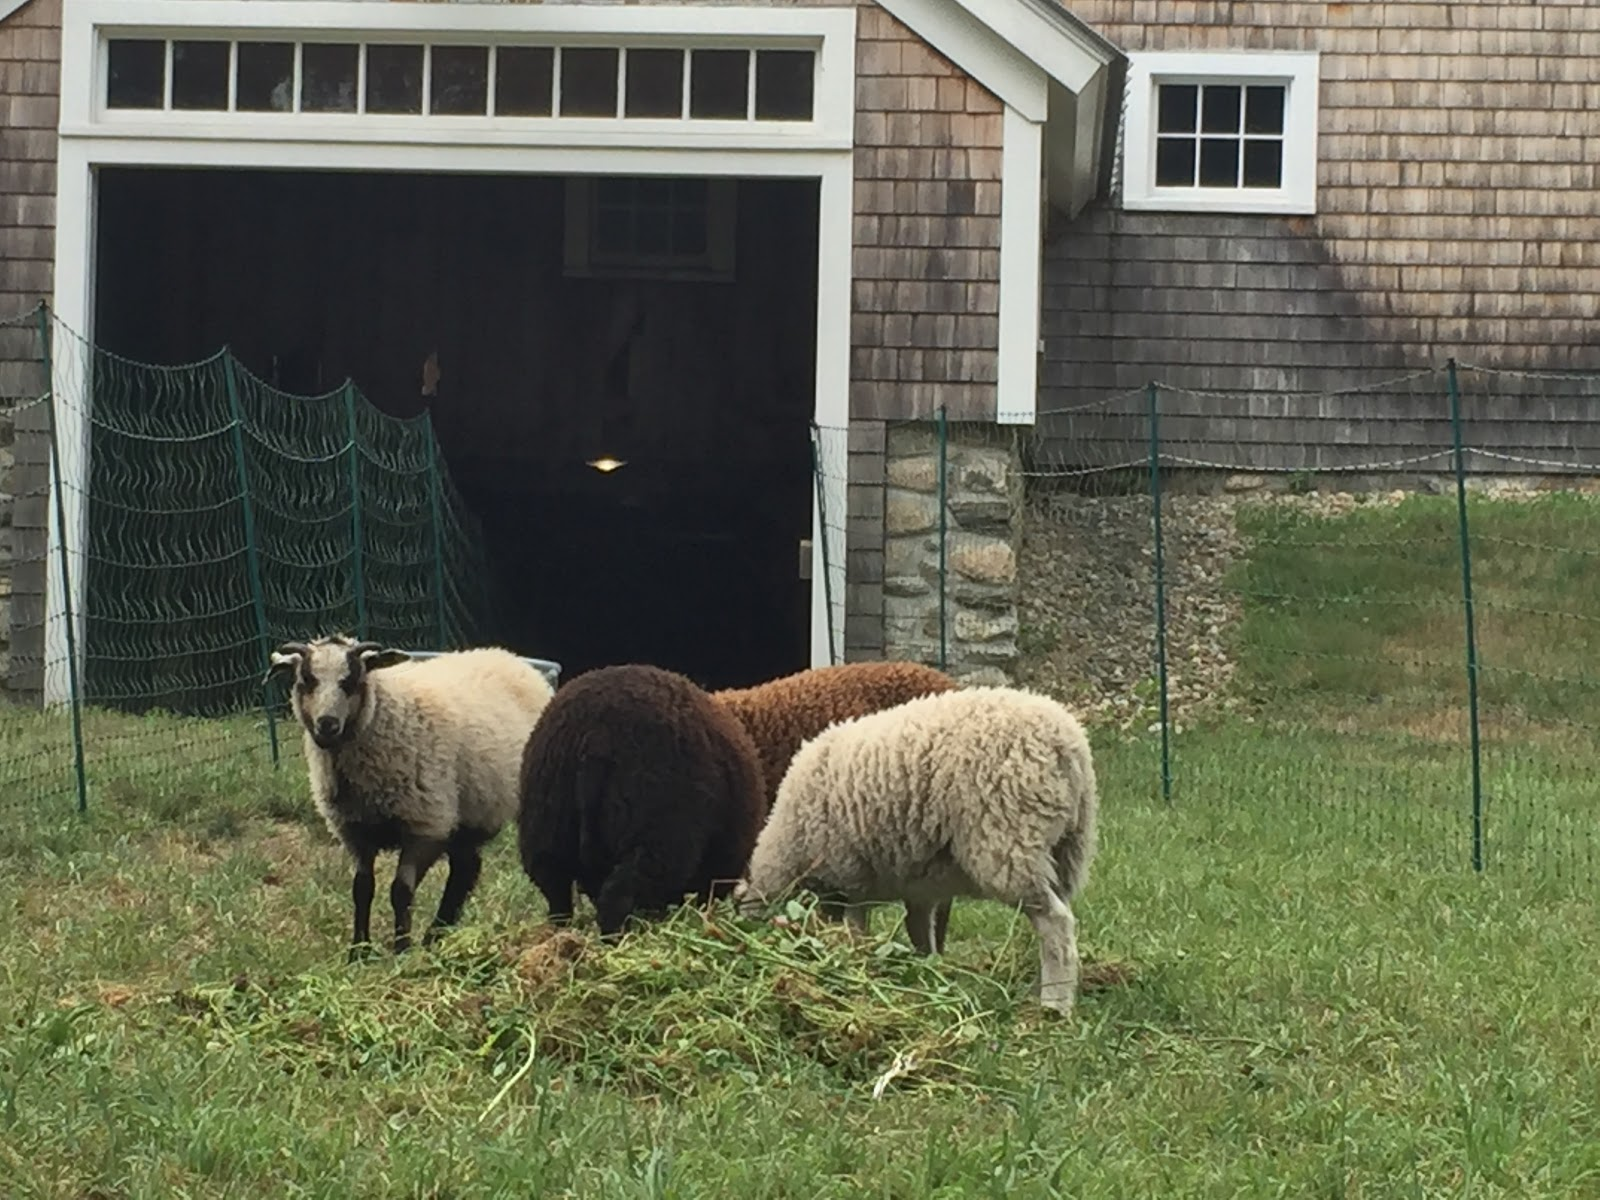 Sheep at ifarm garden